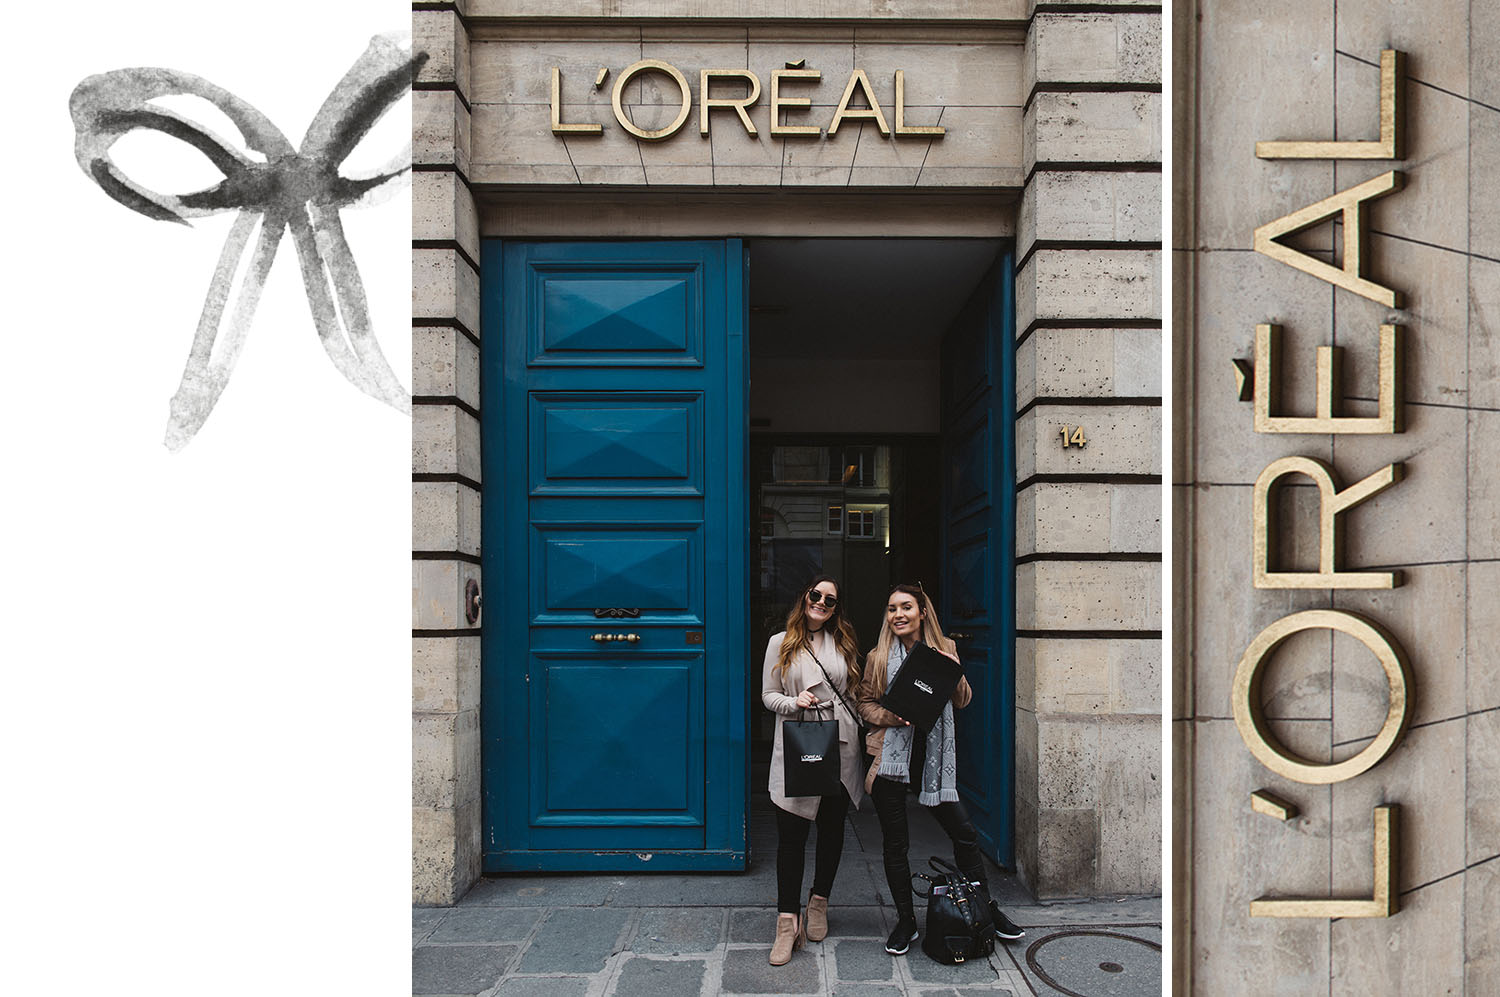 L'Oréal Office in Paris, 14 rue Royale